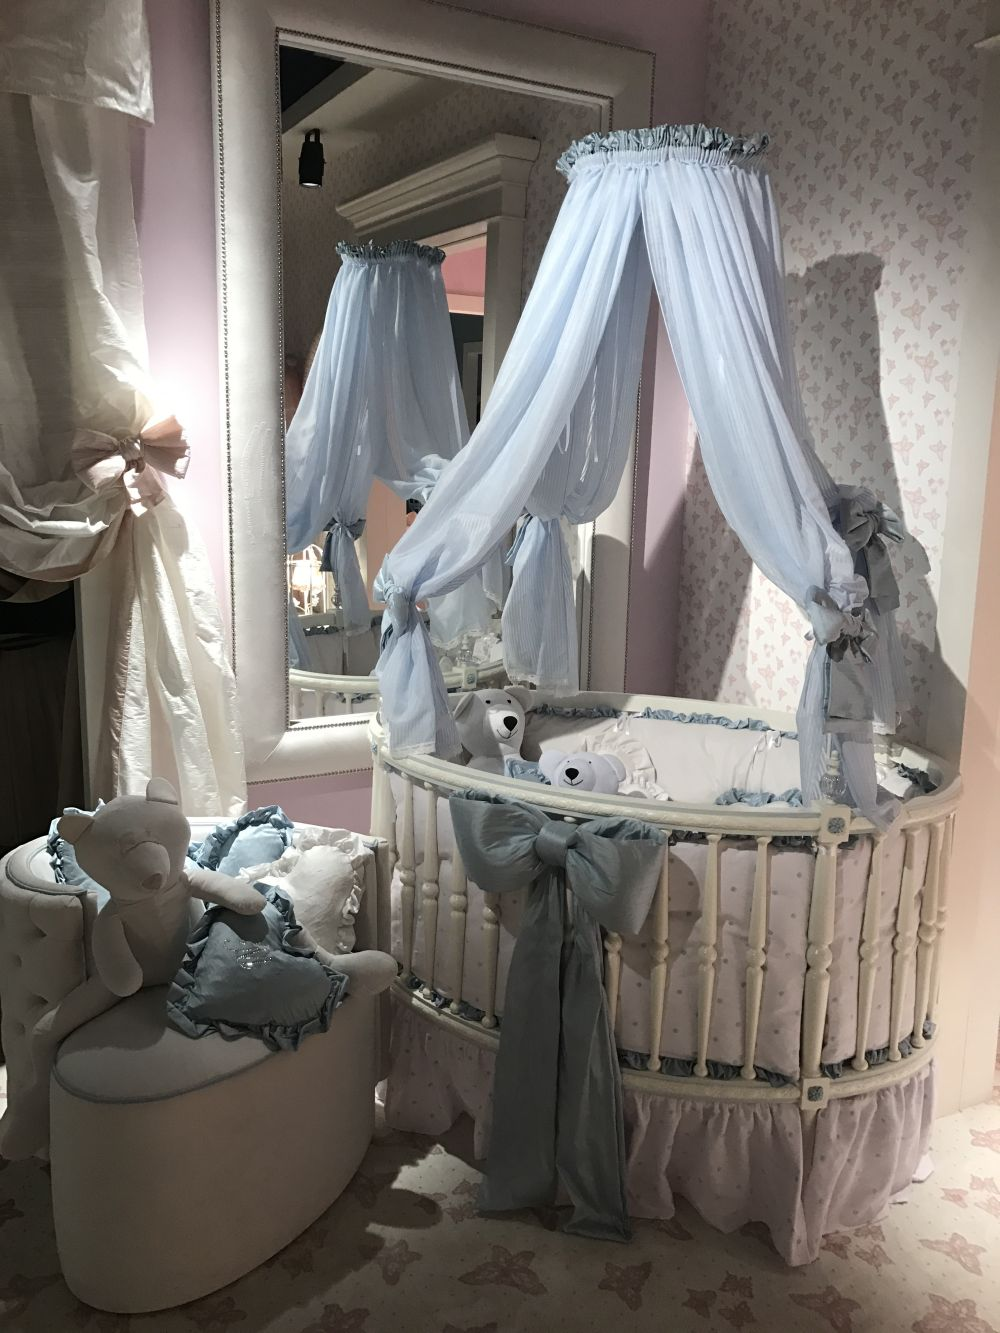 For the first few months of a baby's life, the crib will be the most important element in the room